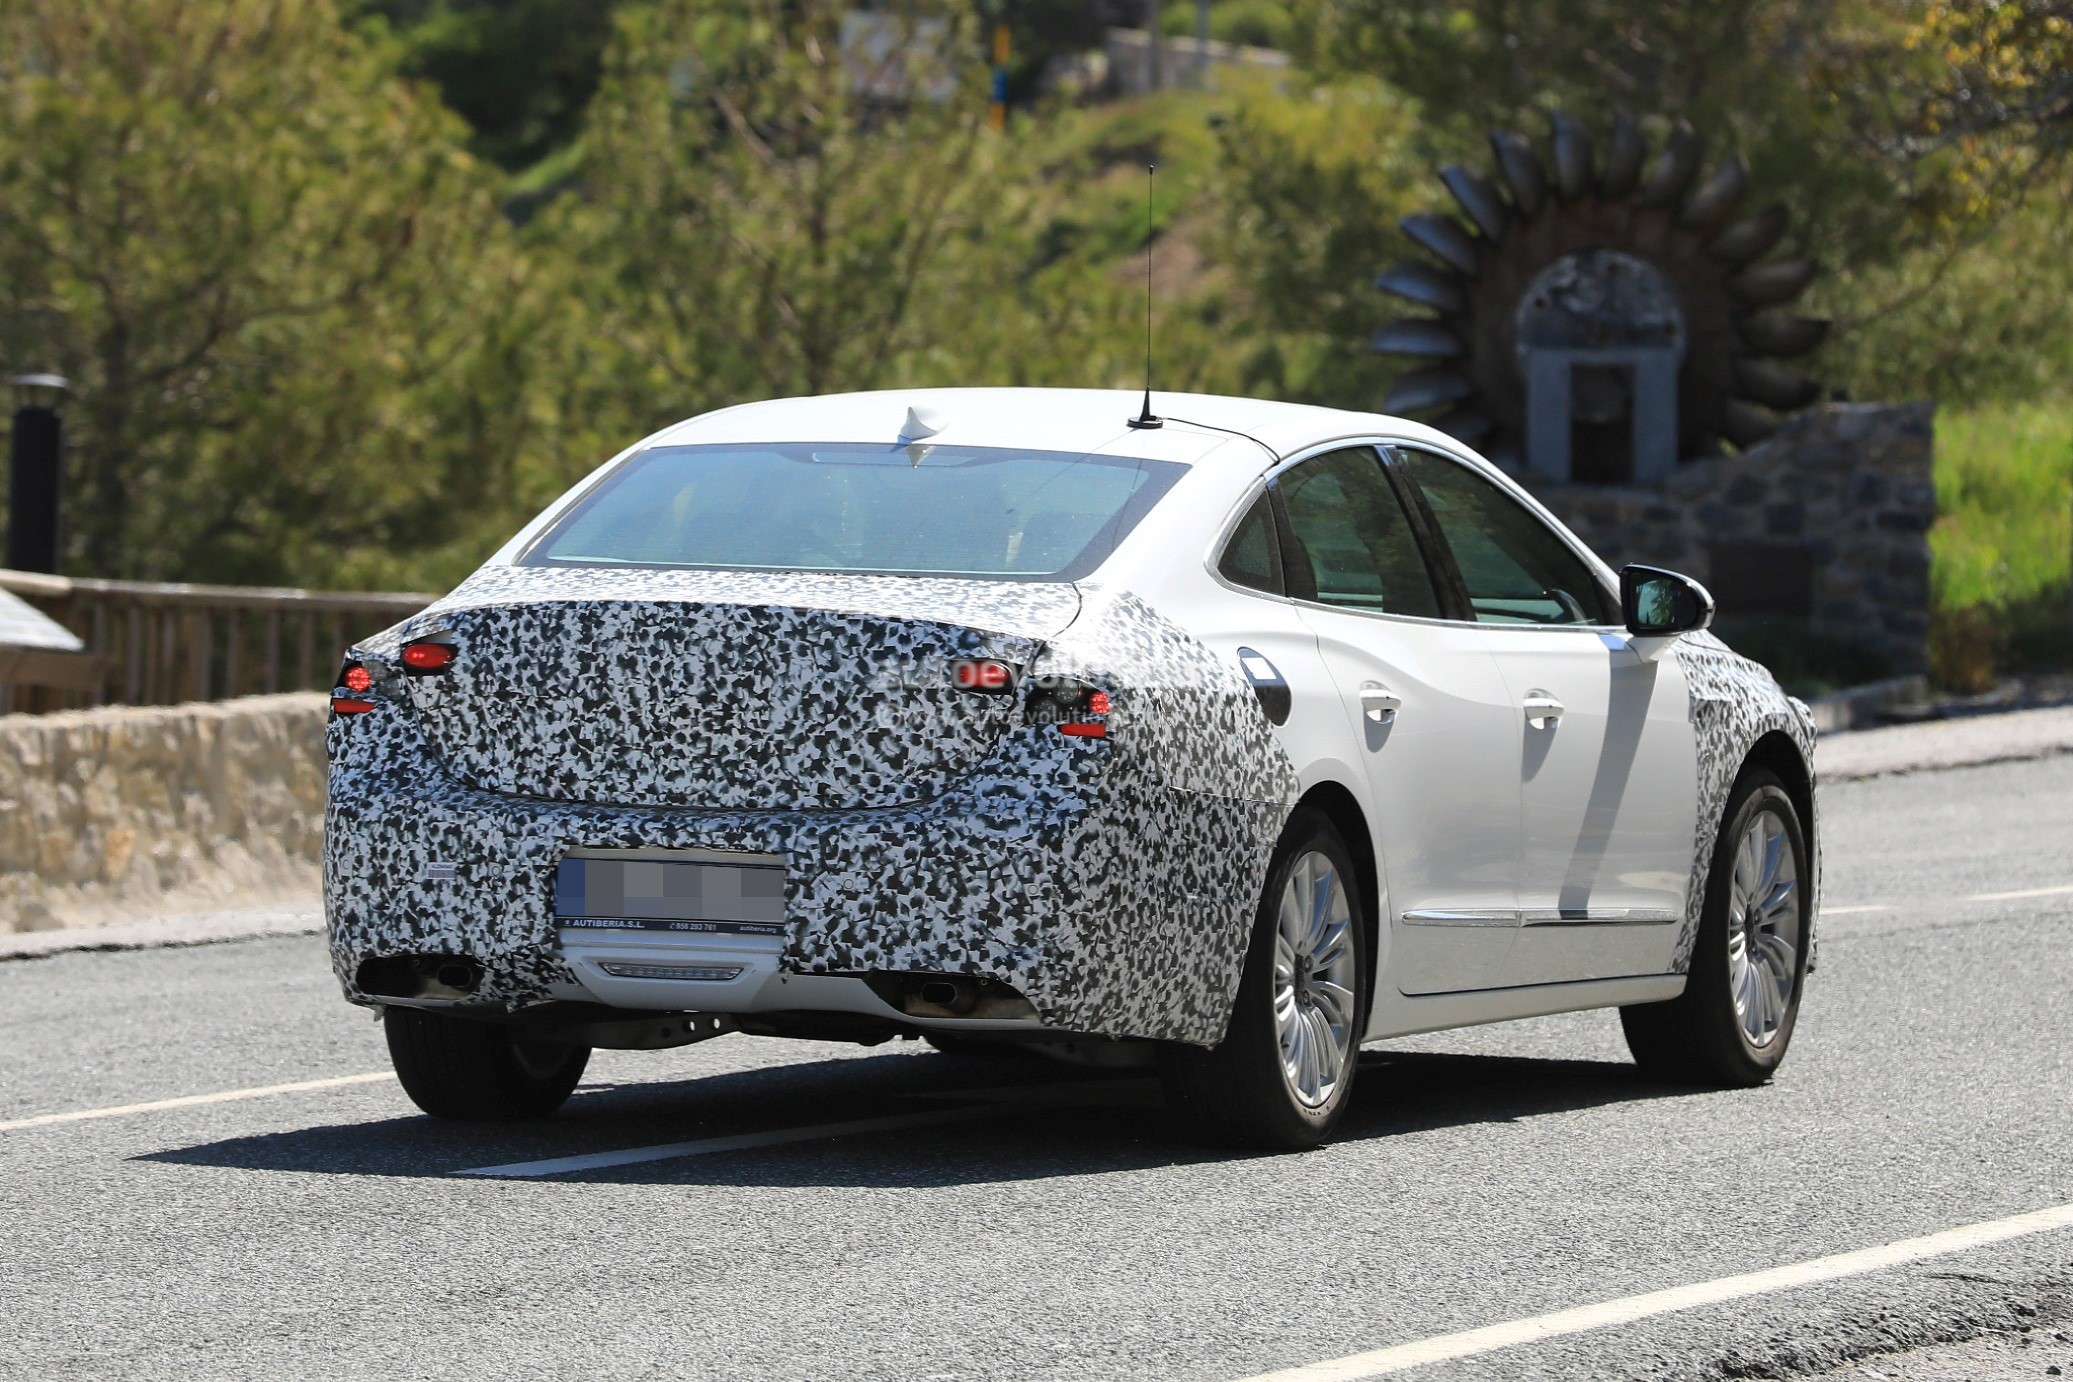 2020 Buick LaCrosse Facelift Canceled From U.S. Lineup